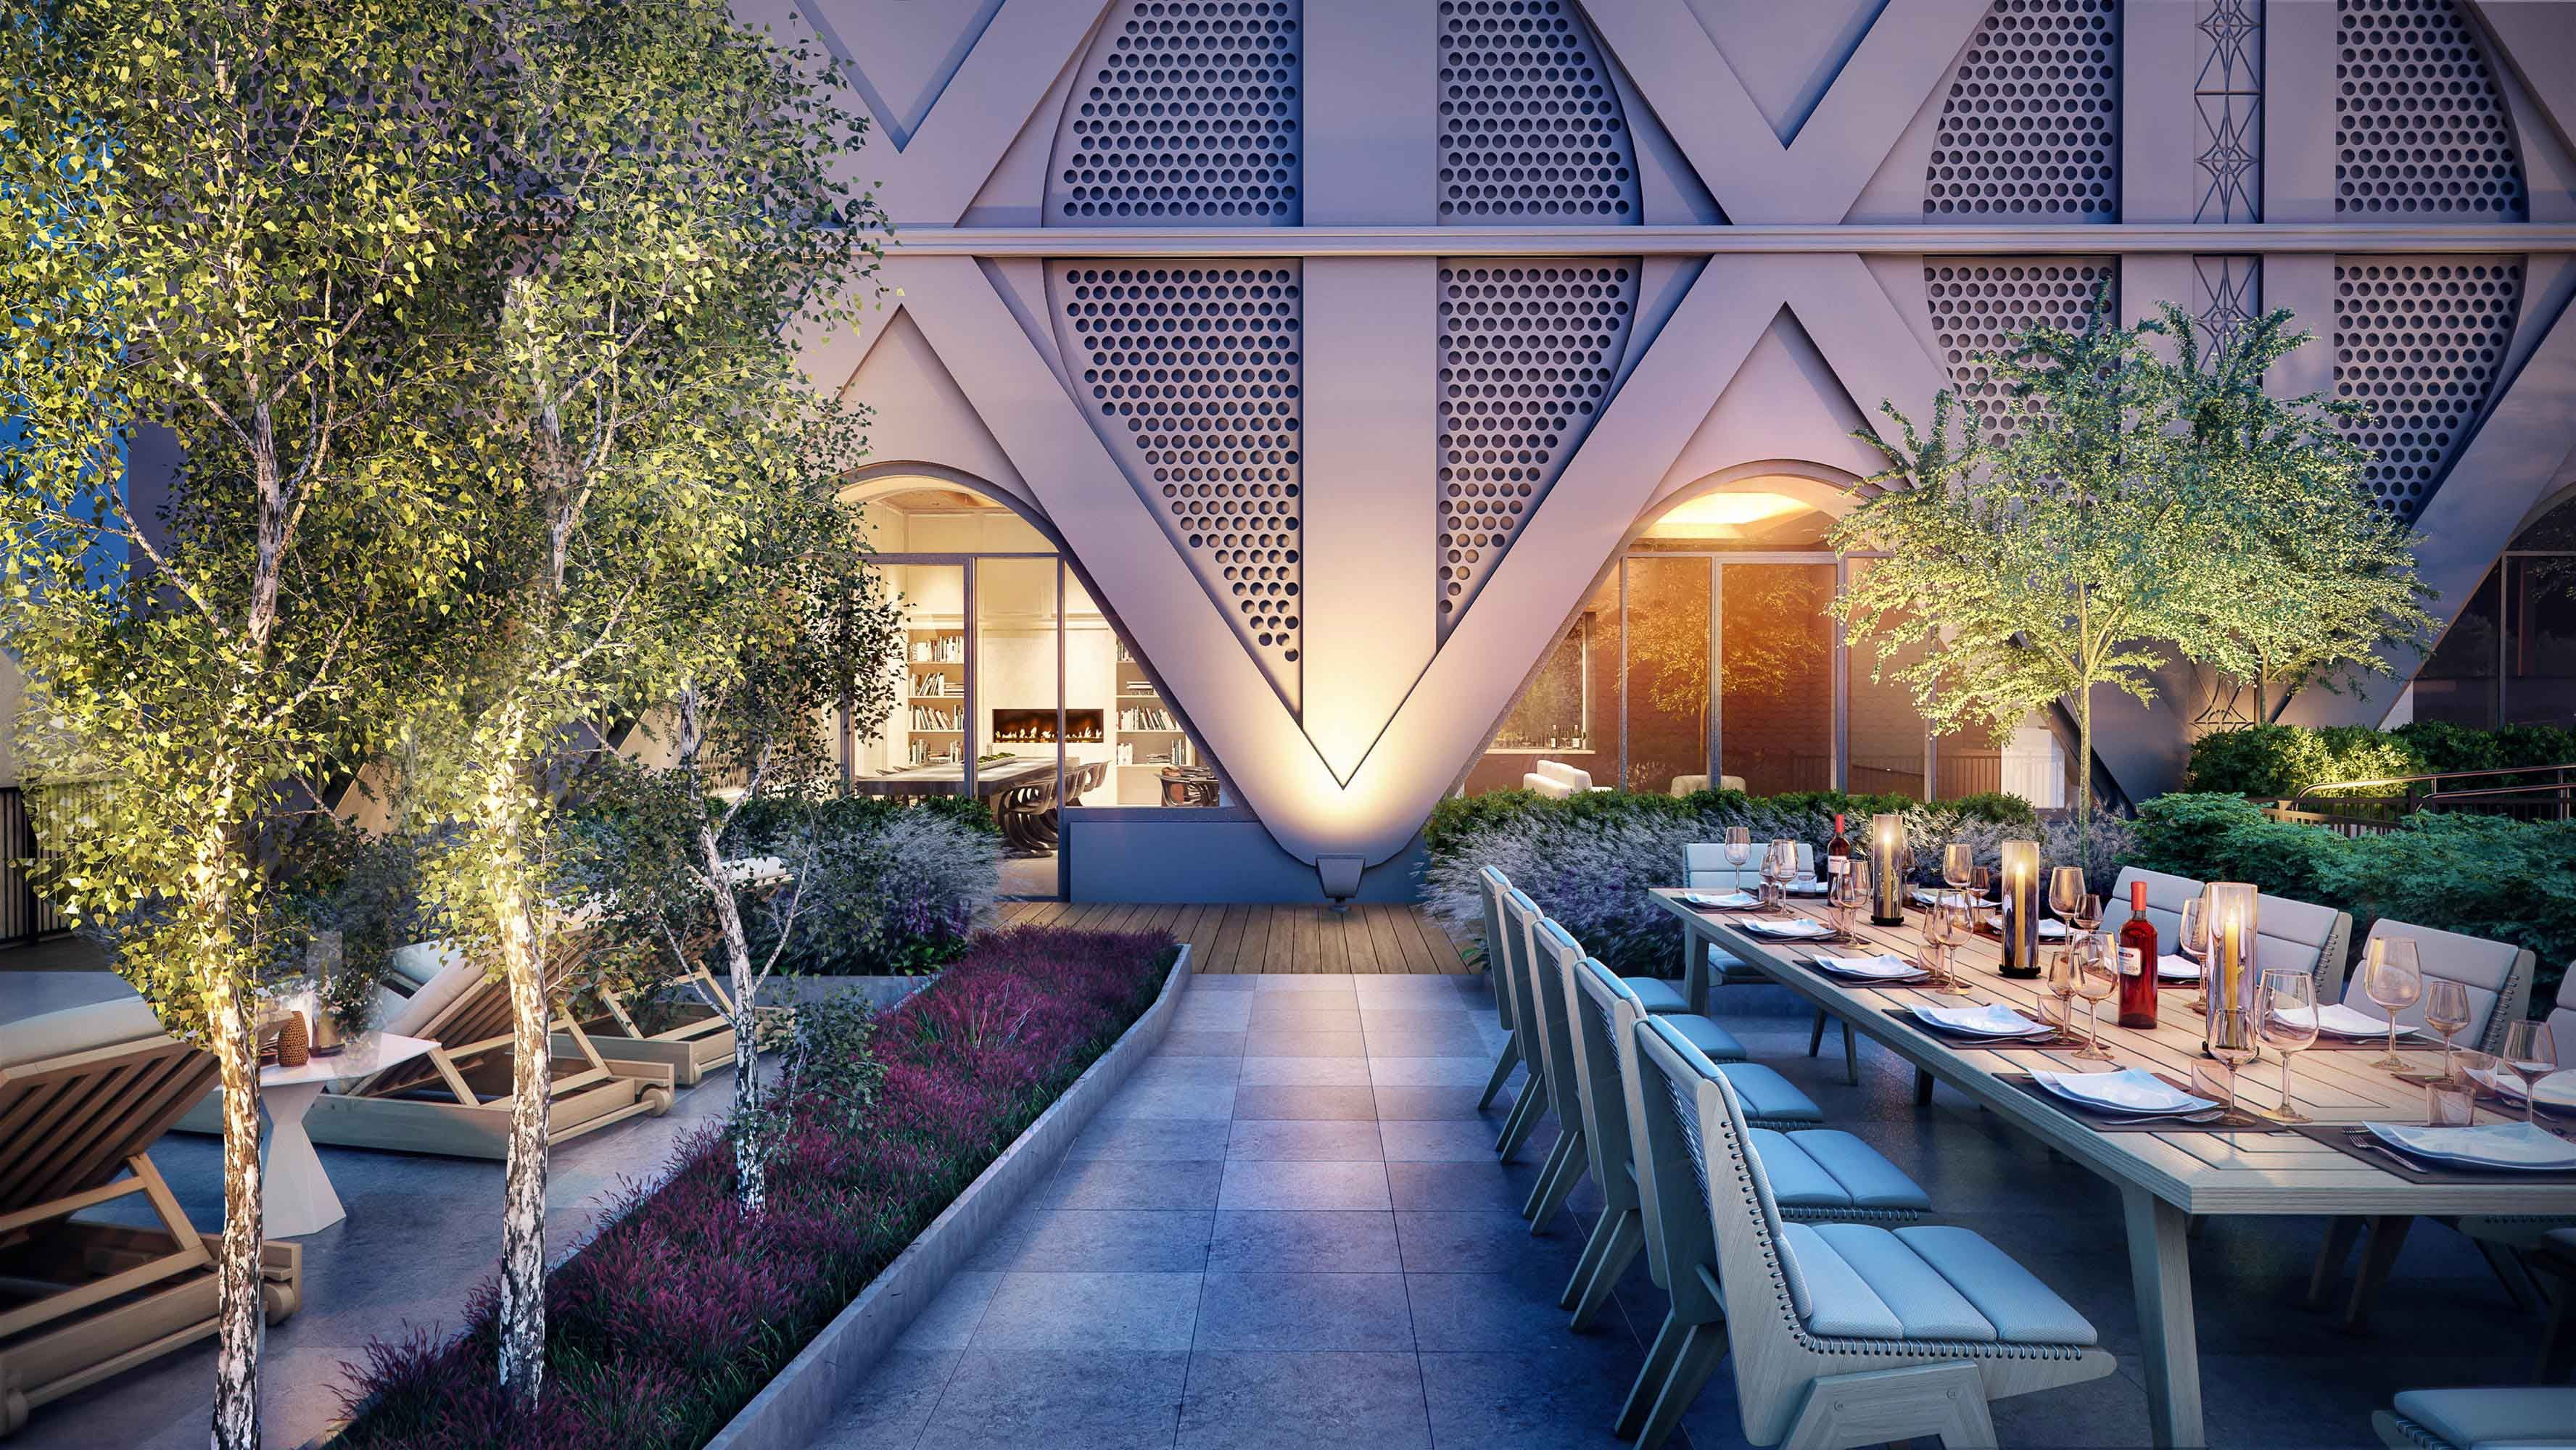 The Rooftop Terrace at The Beeman at 5 Beekman offers